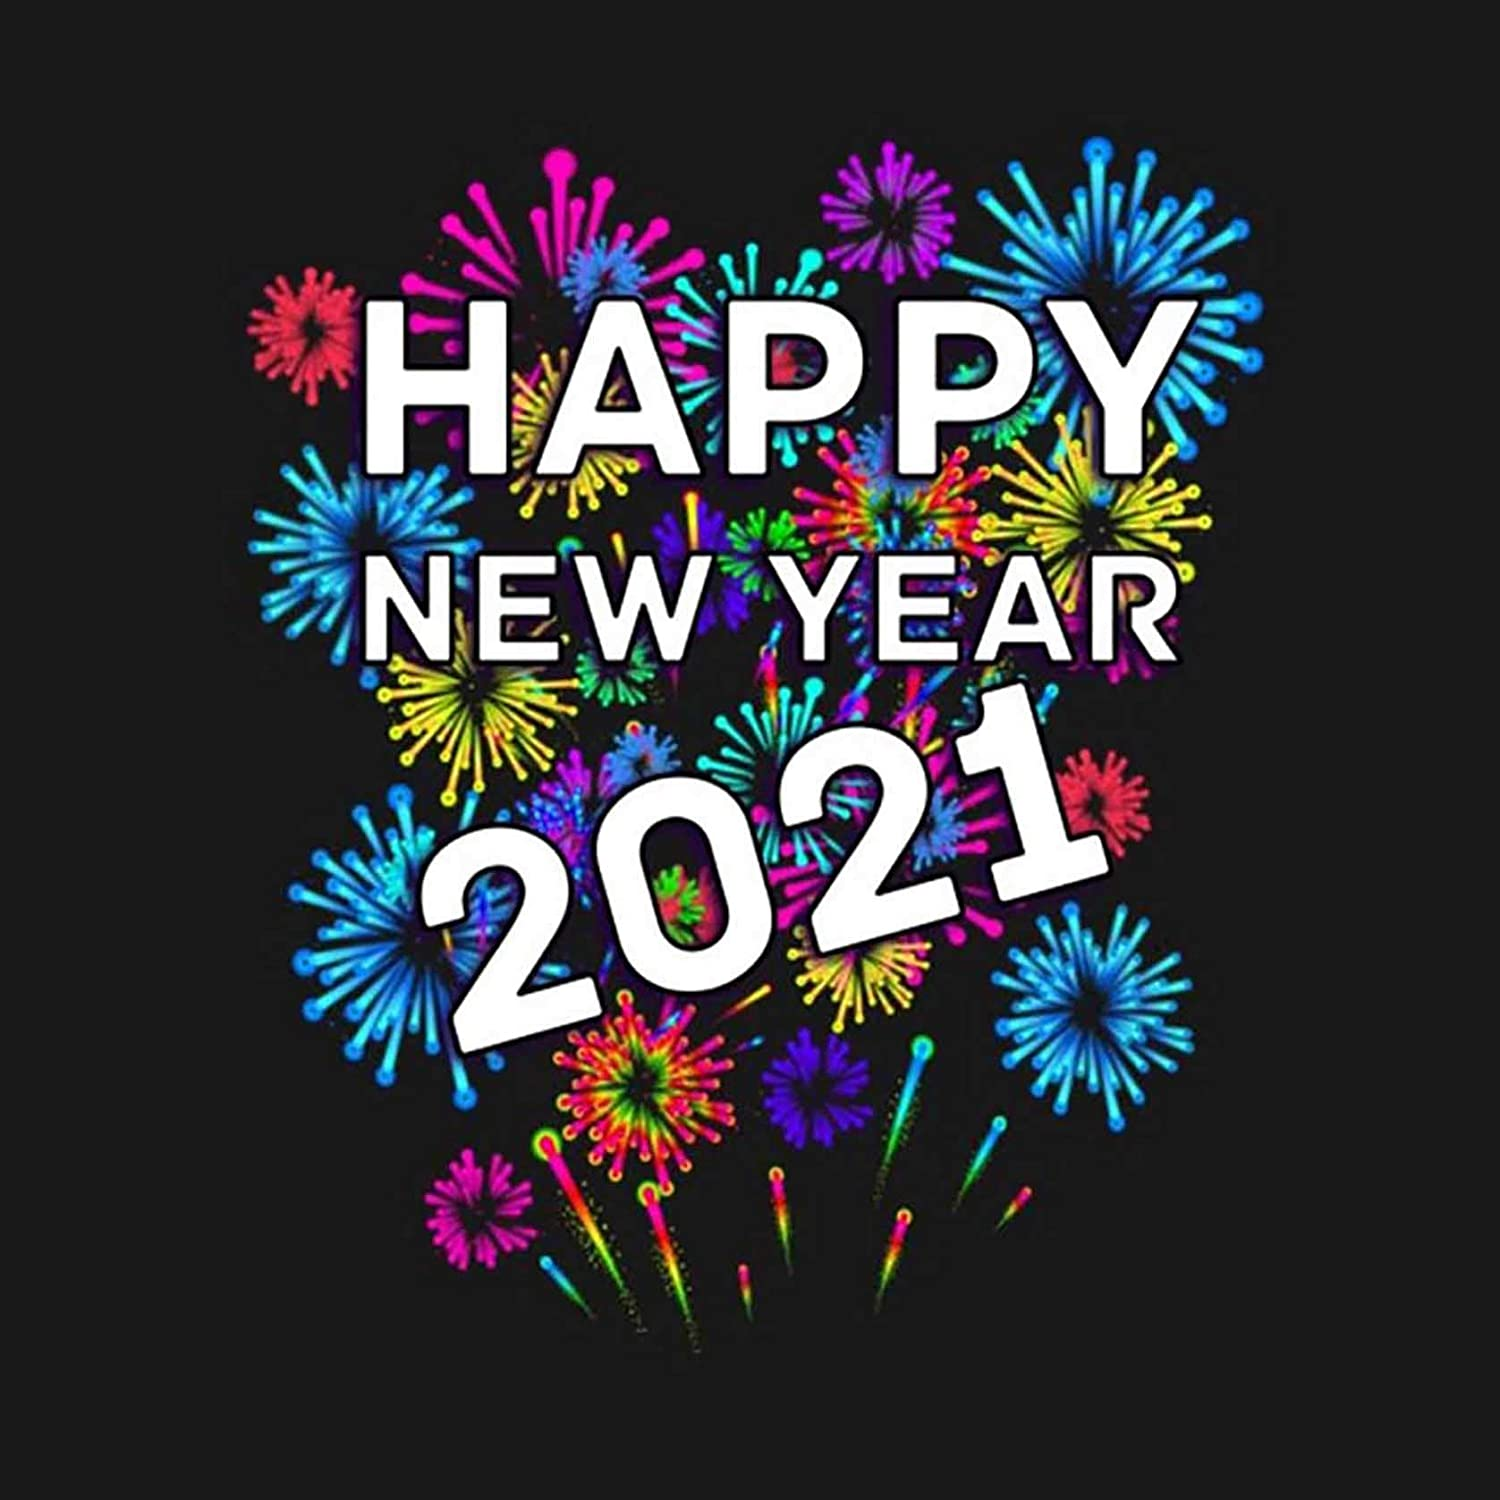 Theshai 5D Diamond Painting Happy New Year, Paint with Diamonds Fireworks 2021 Letter for Home Wall Decor DIY Full Drill Diamond Painting by Number Kits (35x35cm) 14x14inch